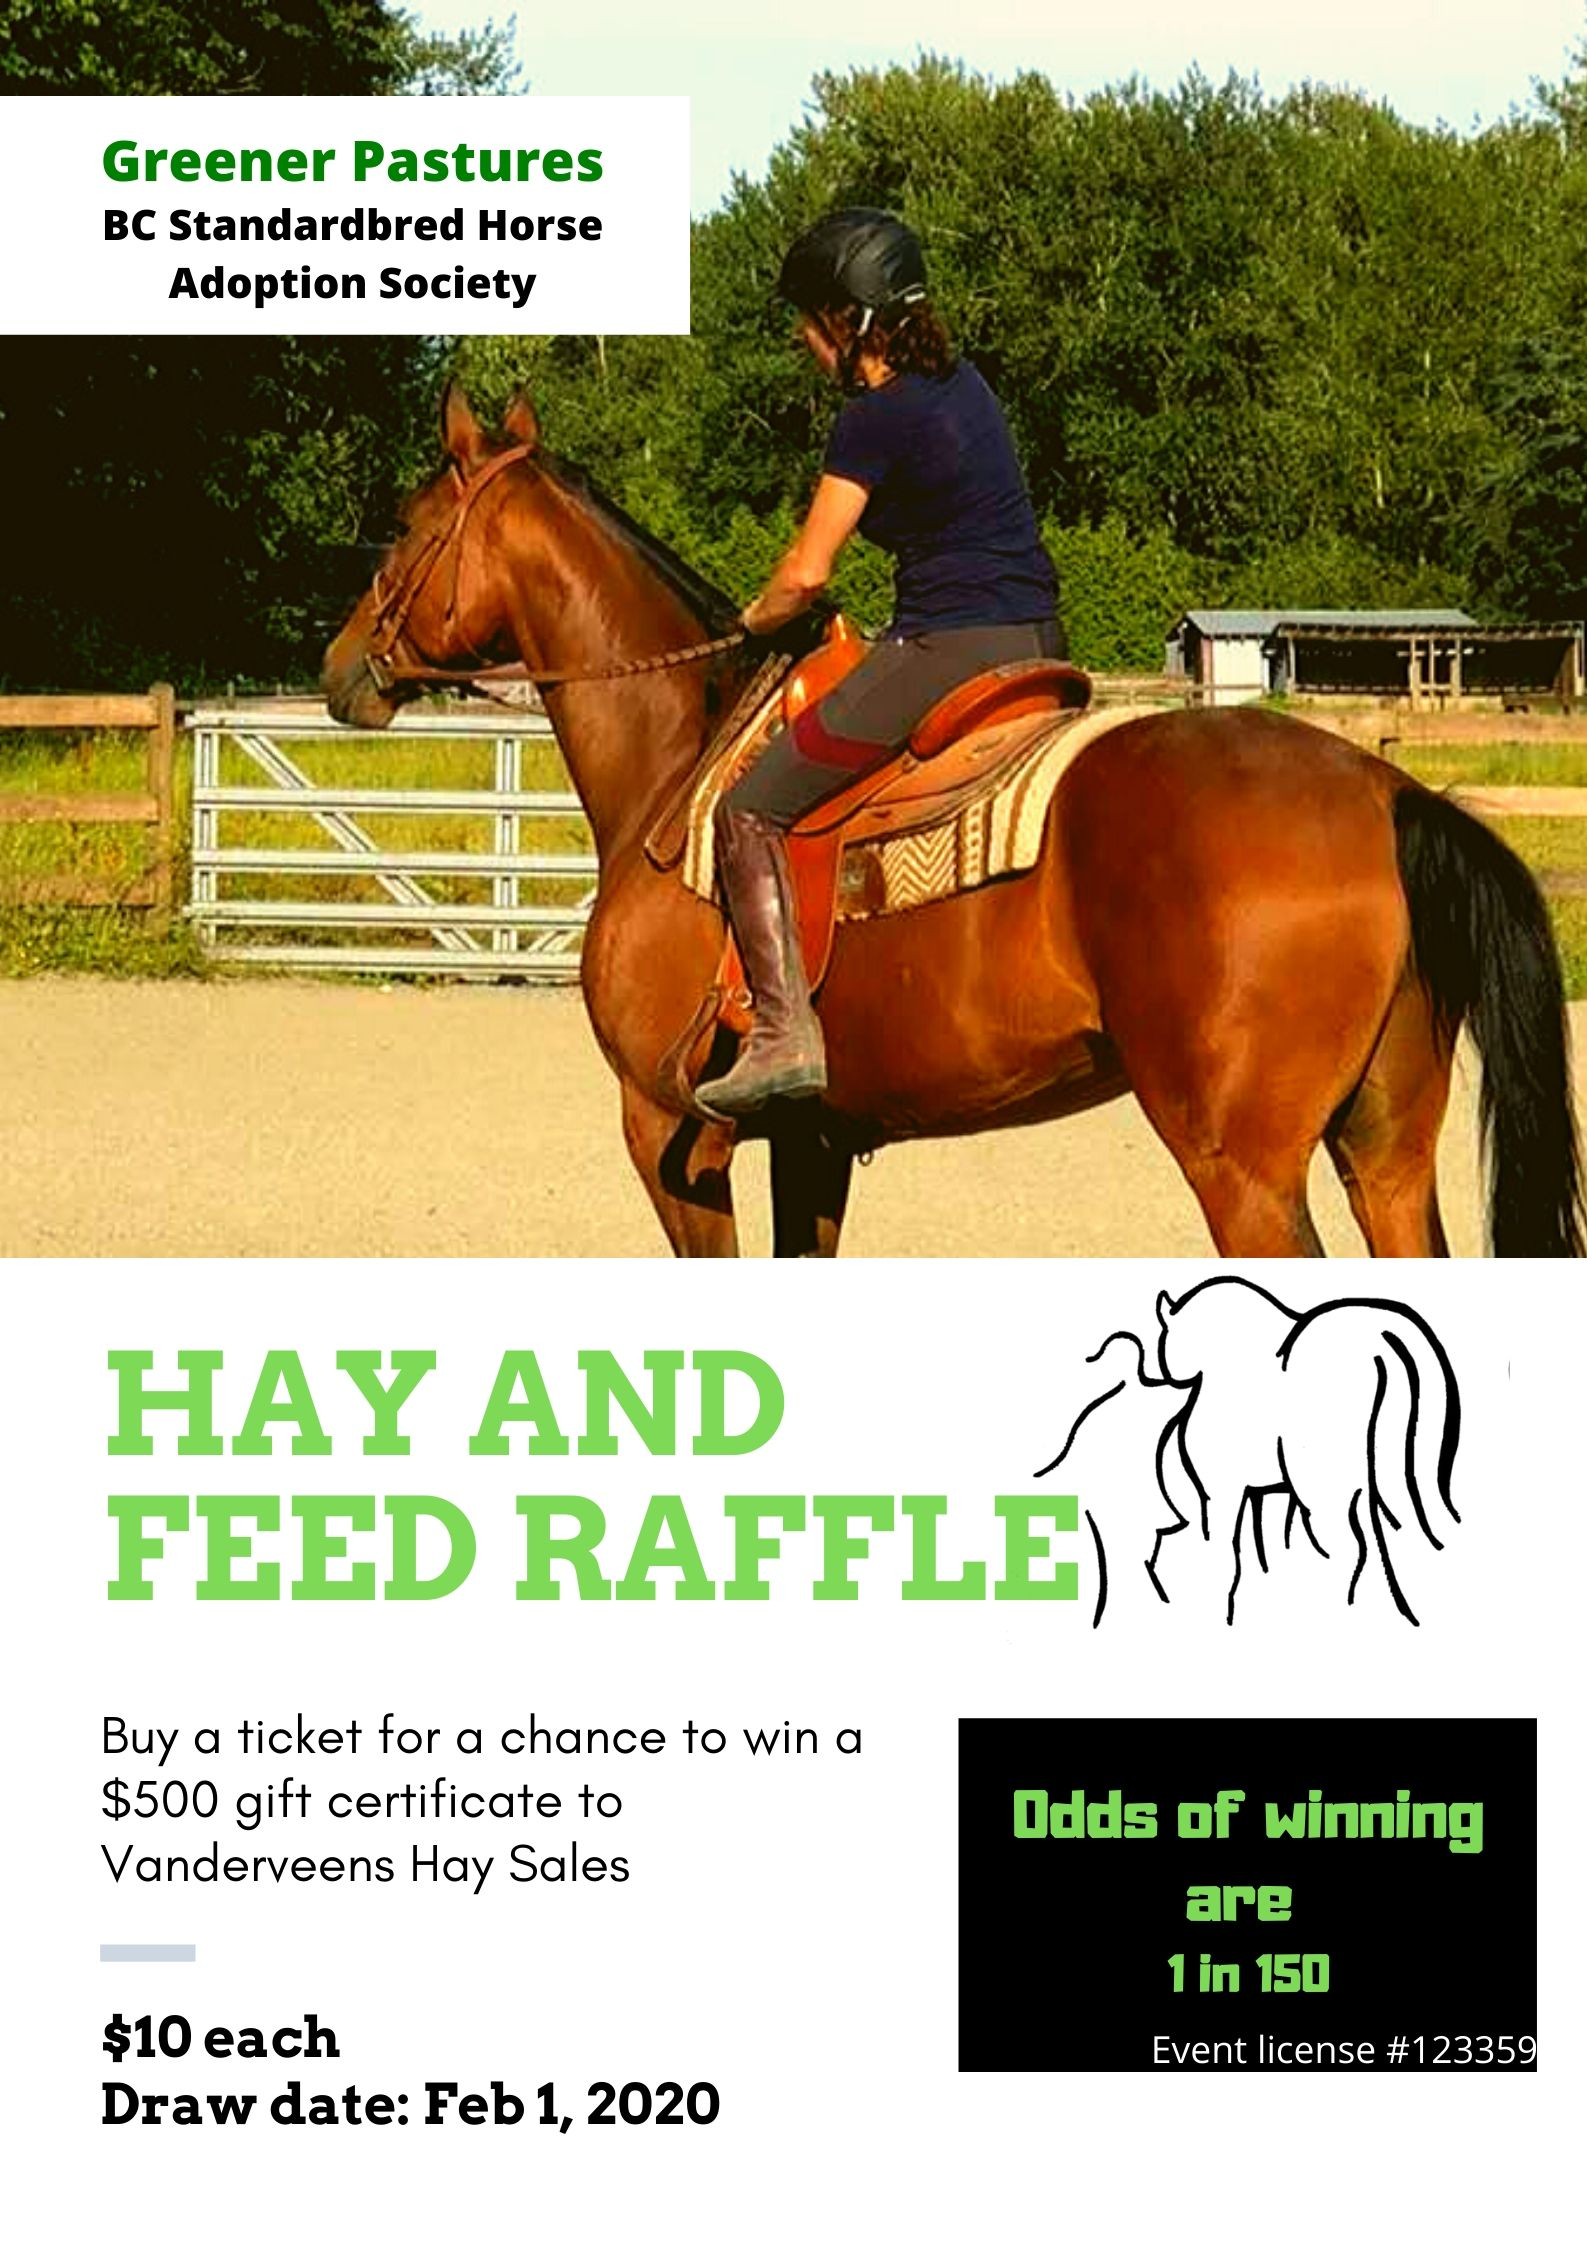 Dark Teal and White Raffle Fundraising Poster